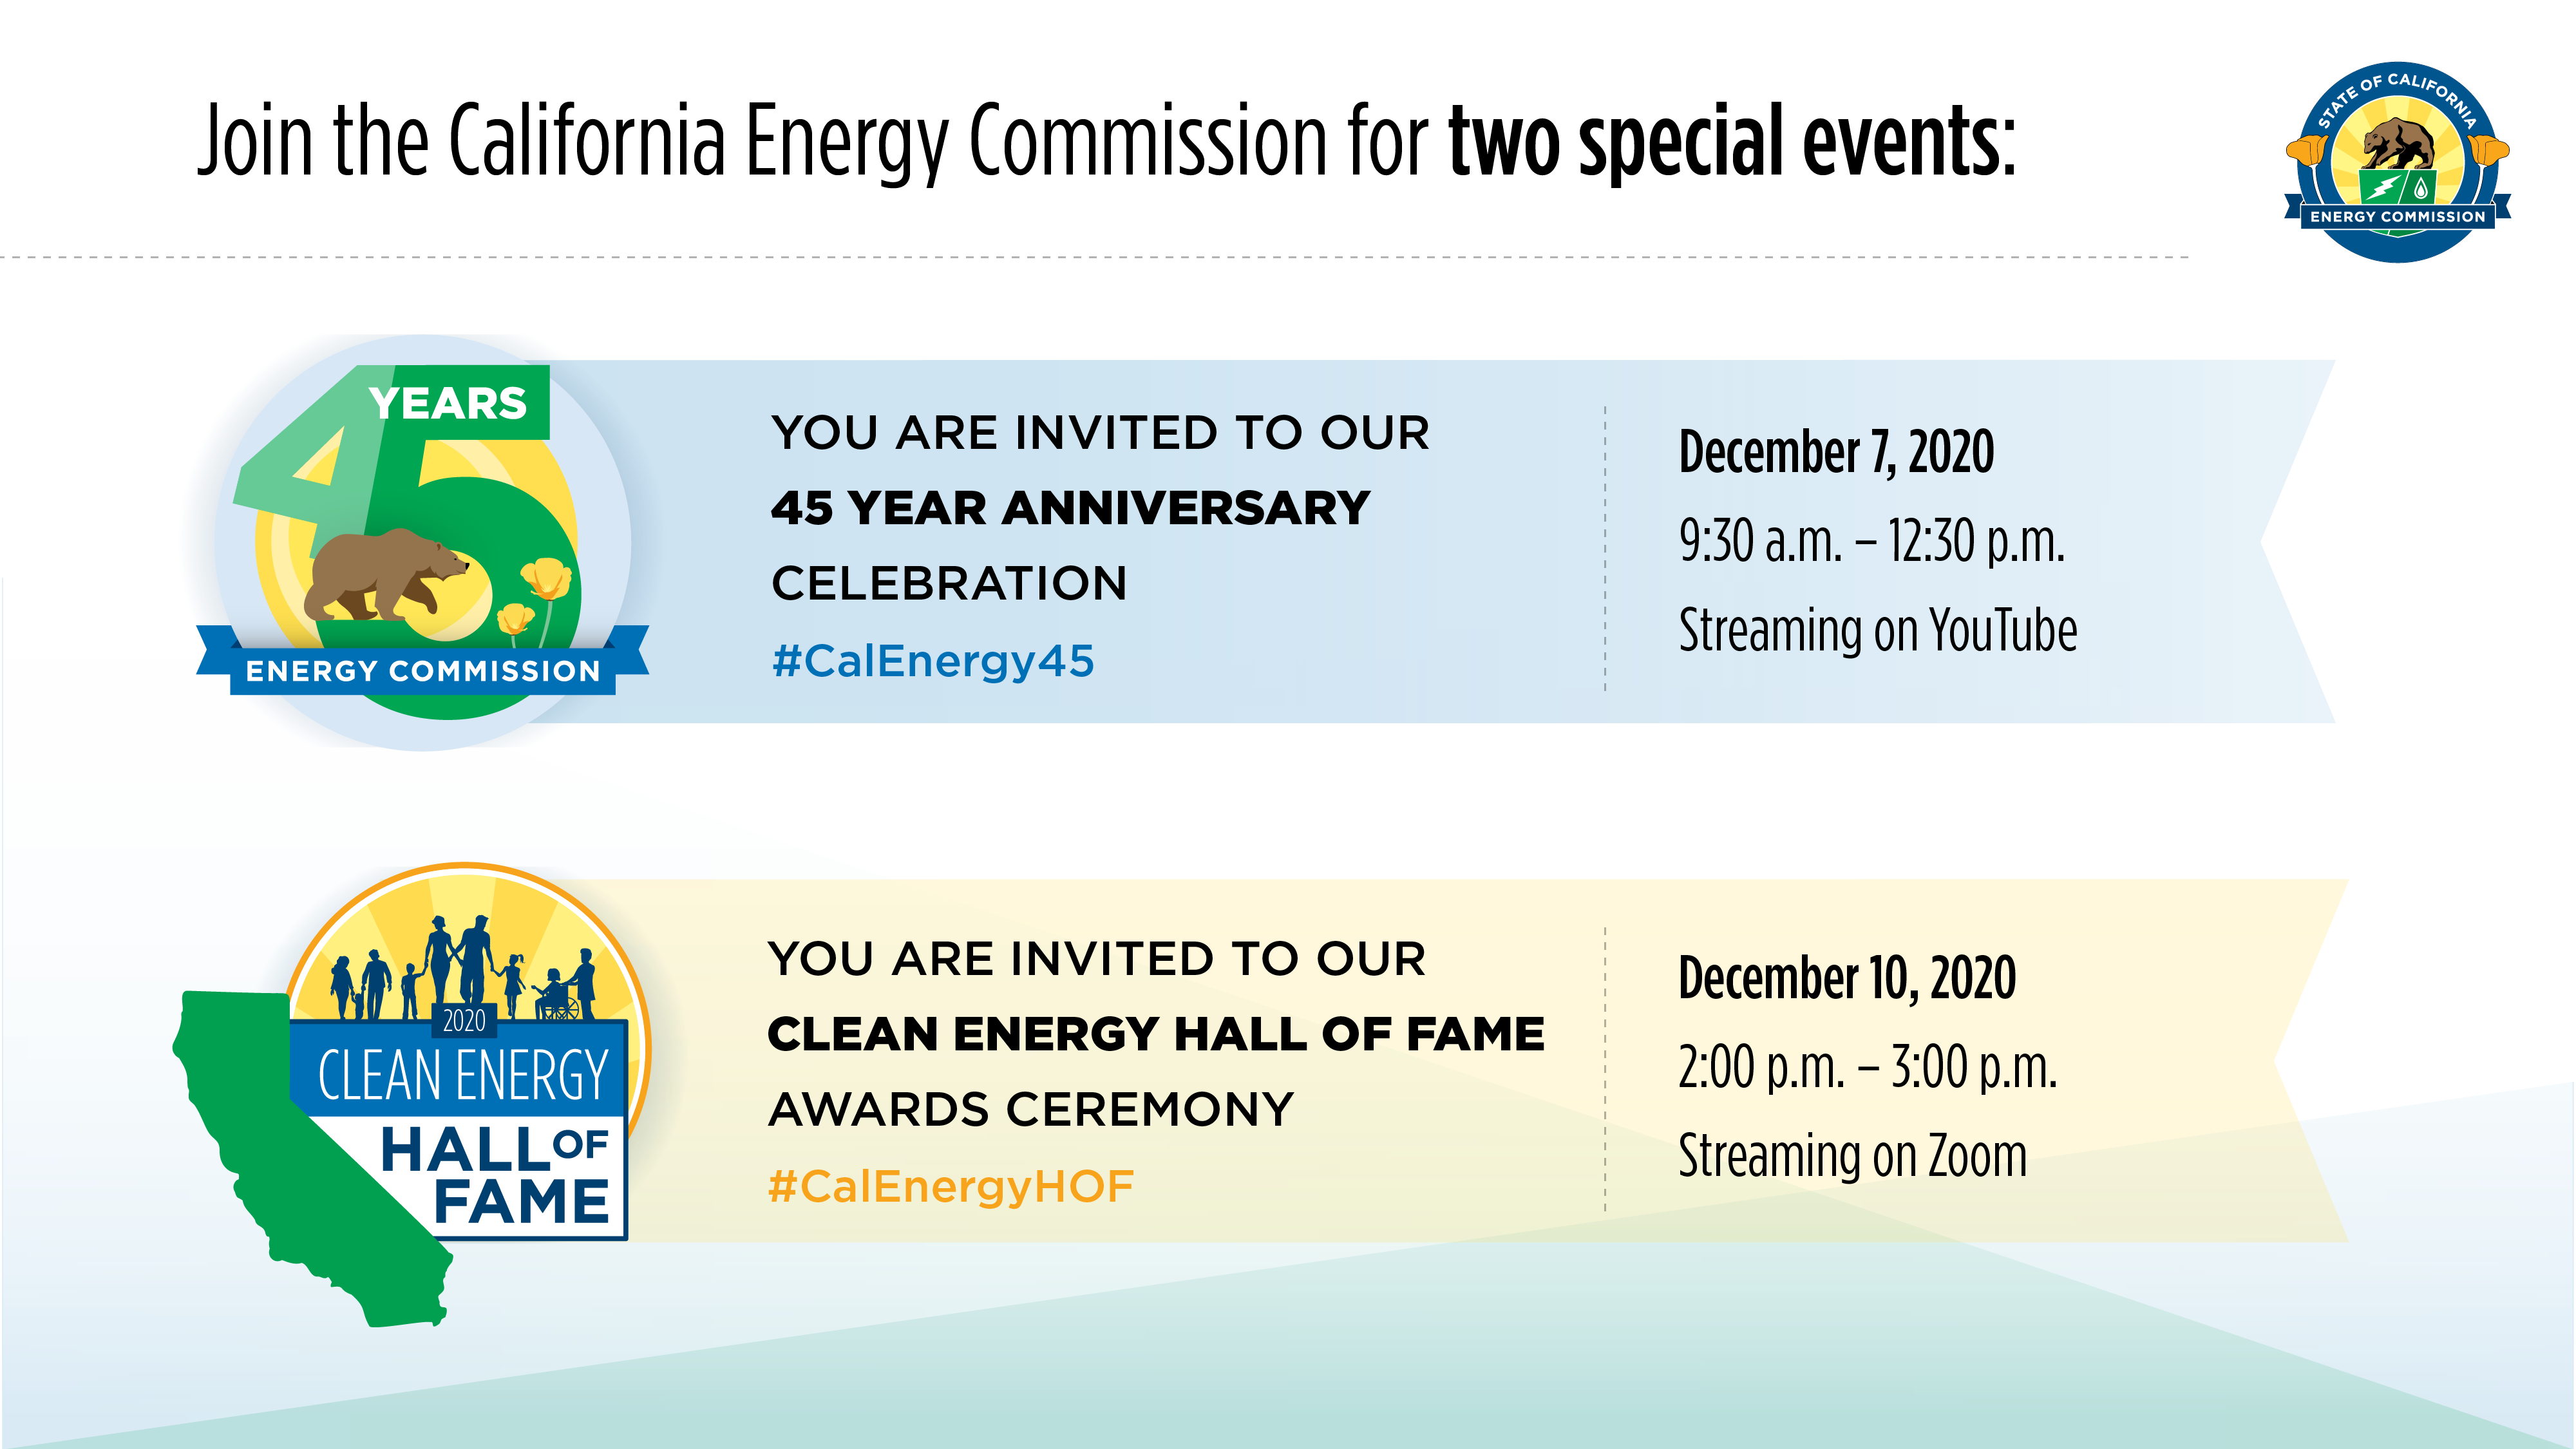 The CEC 45th Anniversary Event is on Dec 7th, 2020 from 9:30 a.m. - 12:30p.m.and the Clean Energy Hall of Fame Event is on December 10, 2020 from 2:00 p.m. - 3:00 p.m.